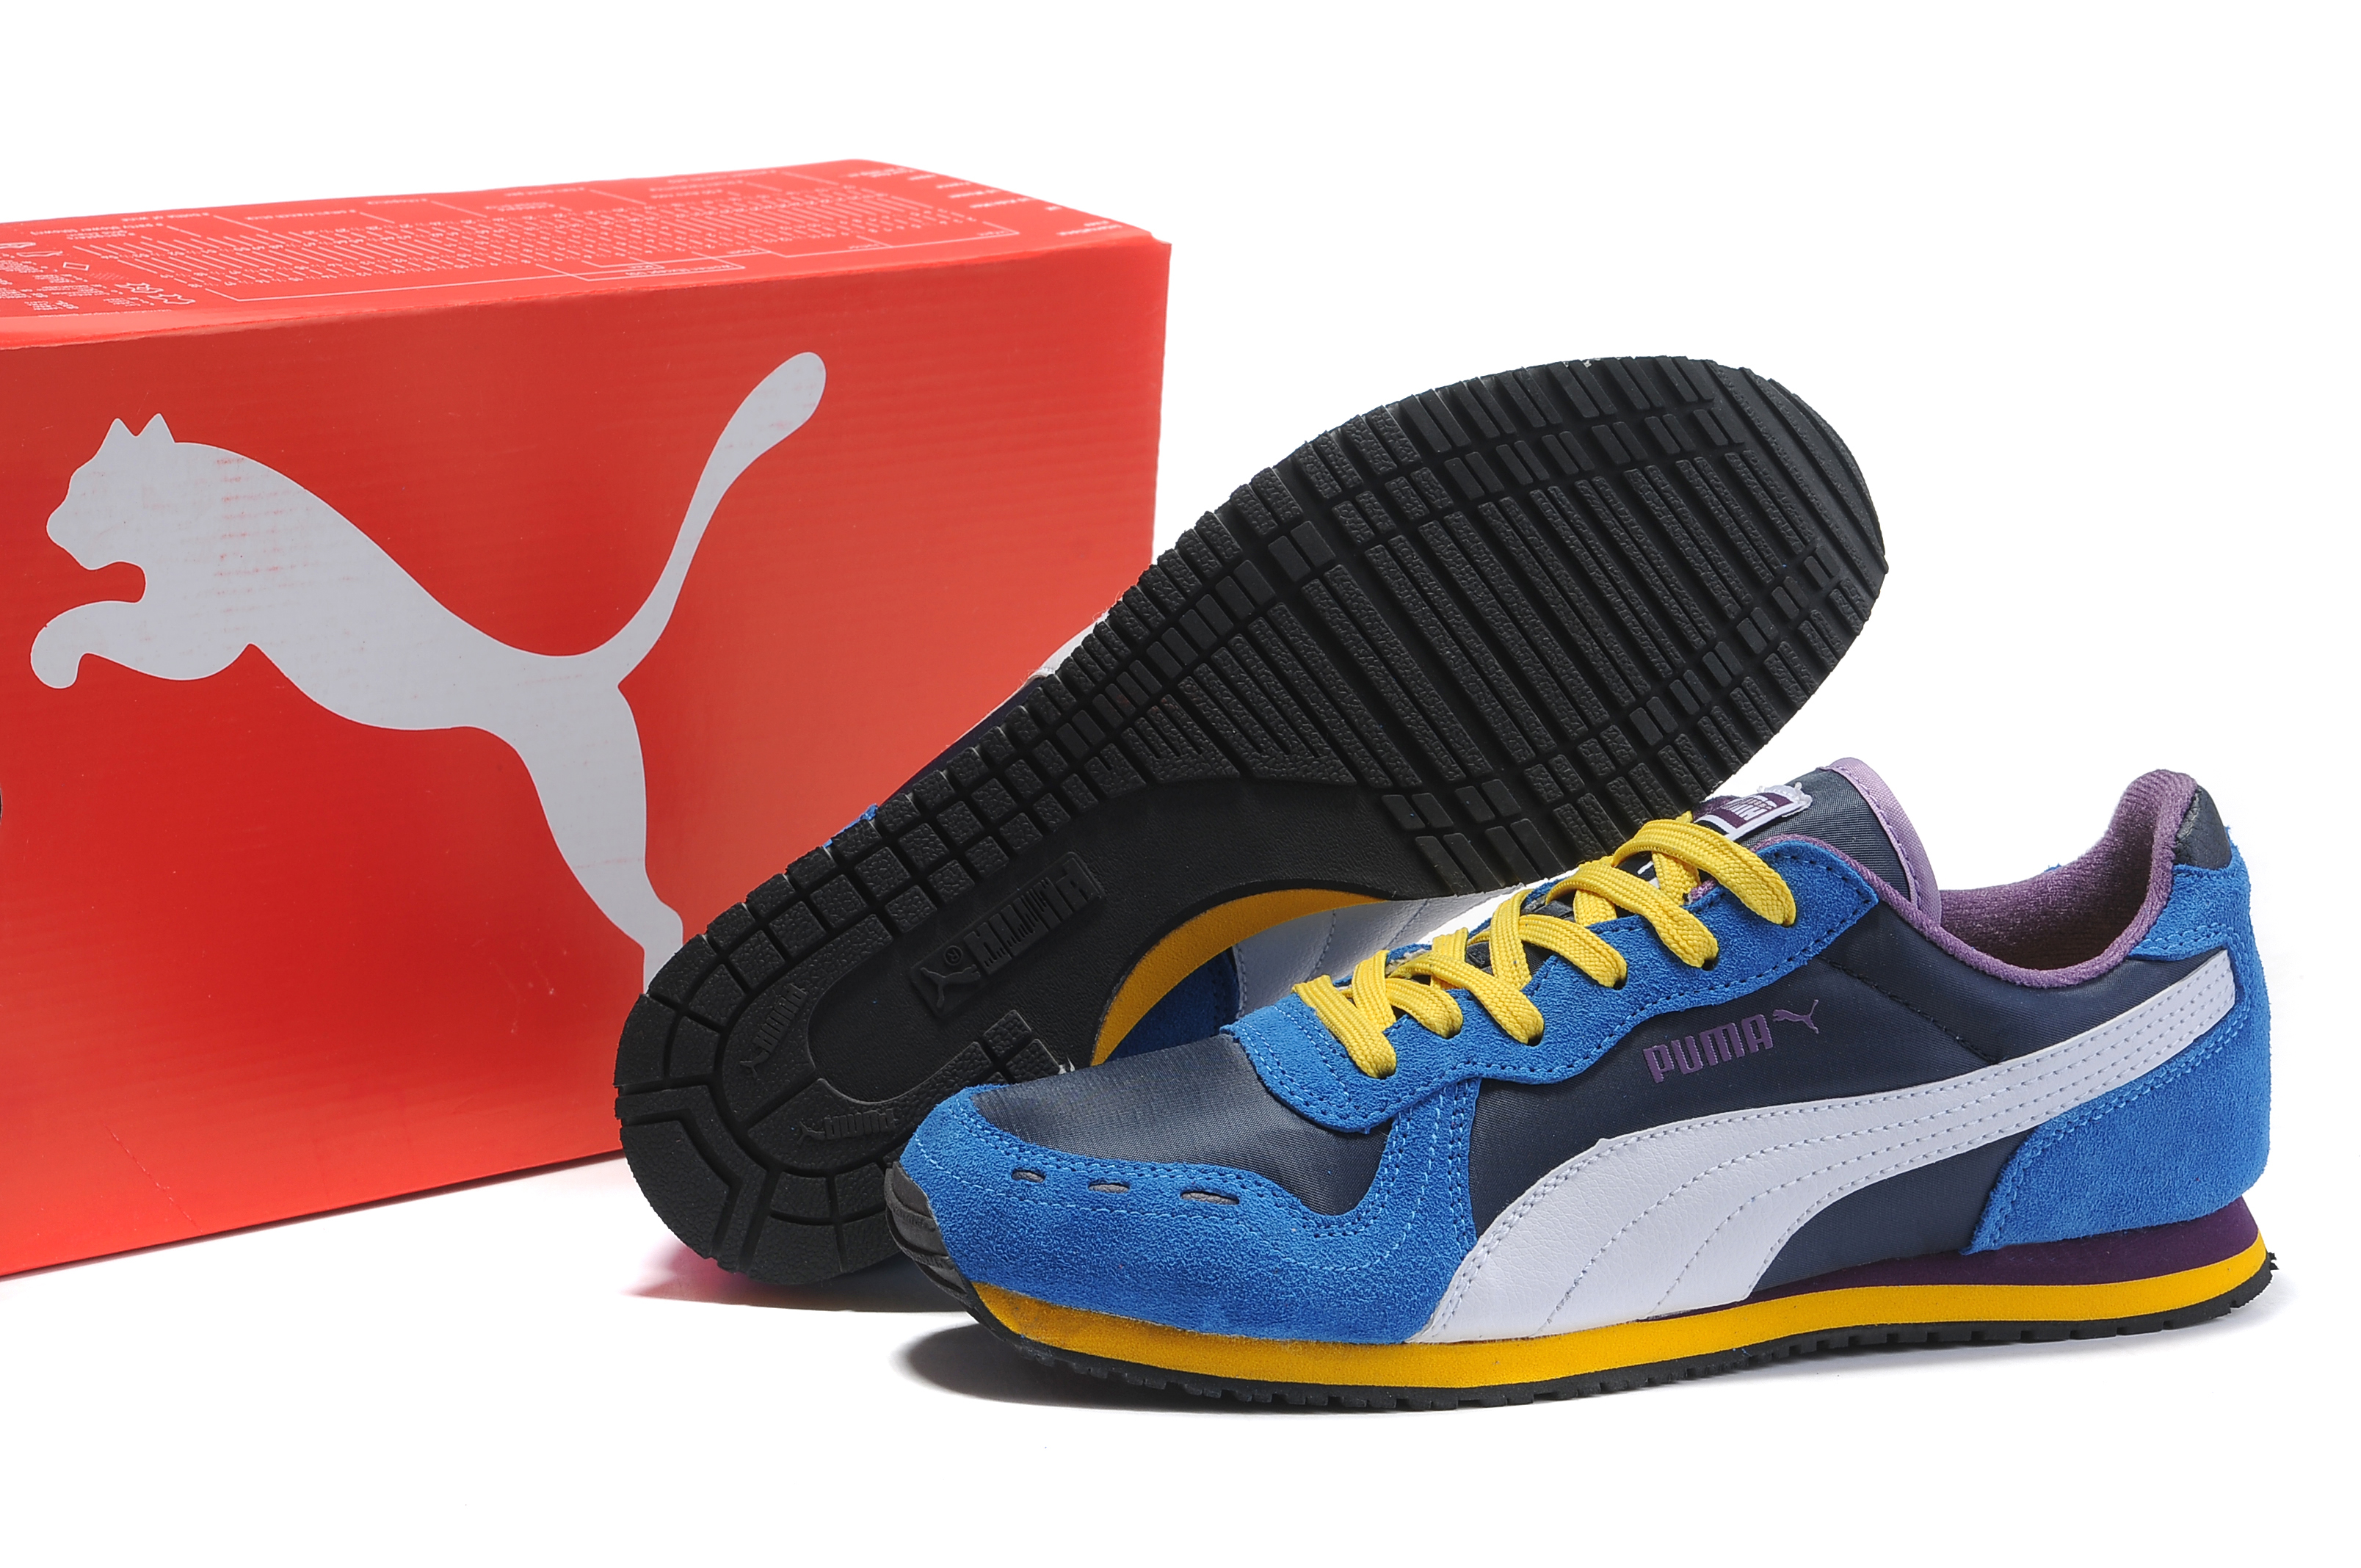 2015/16 Good Seller Coupon Puma Shoes Online,Cheap Puma Shoes For